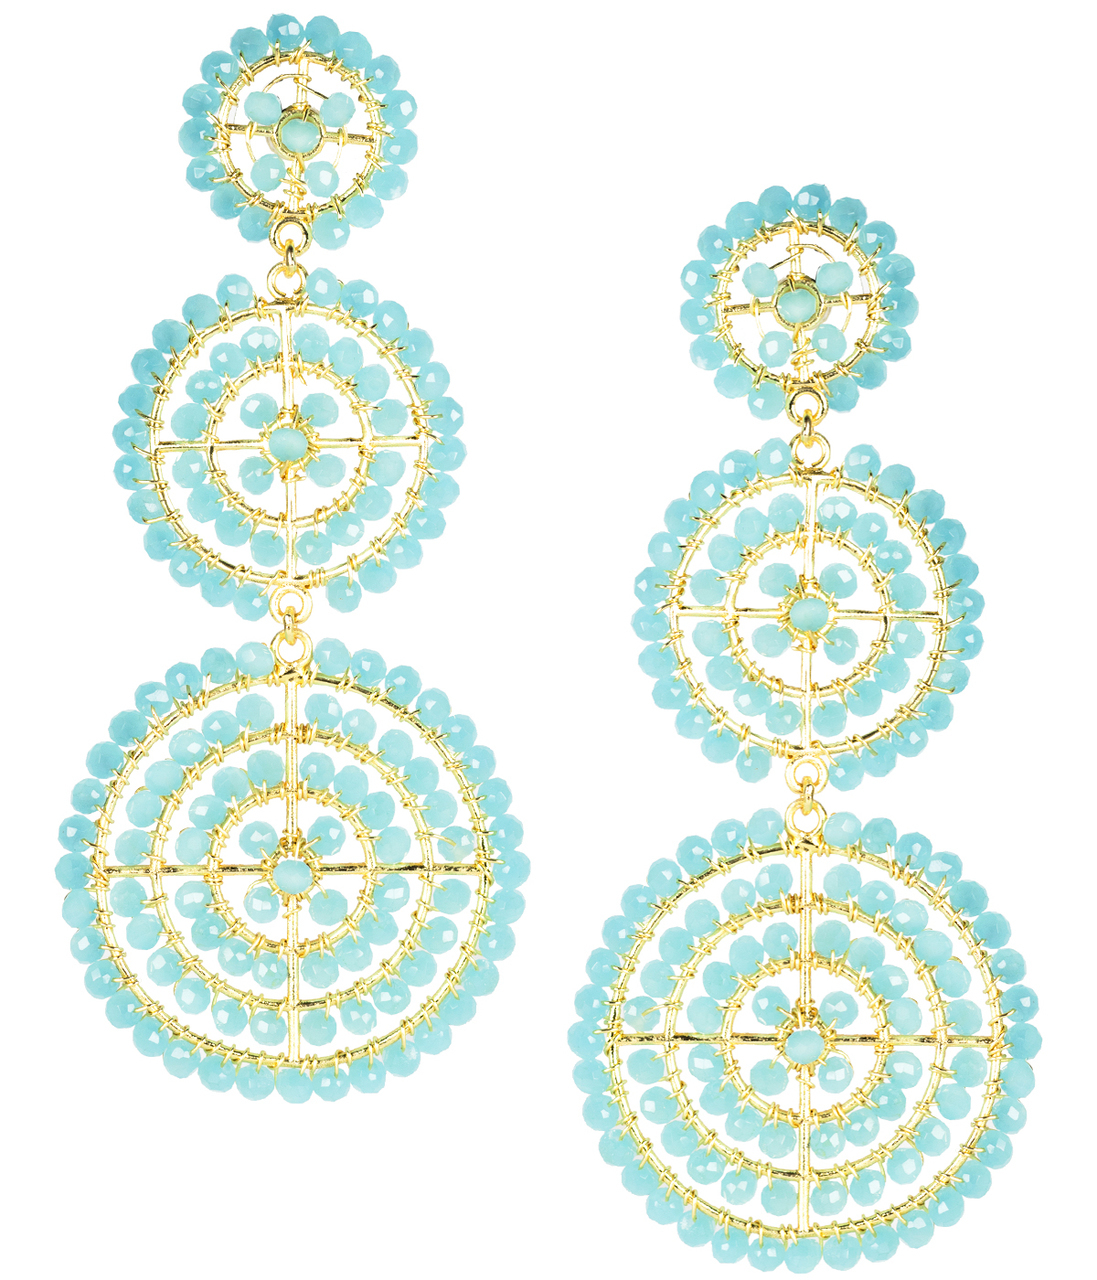 Greta Aqua Earrings by LISI LERCH